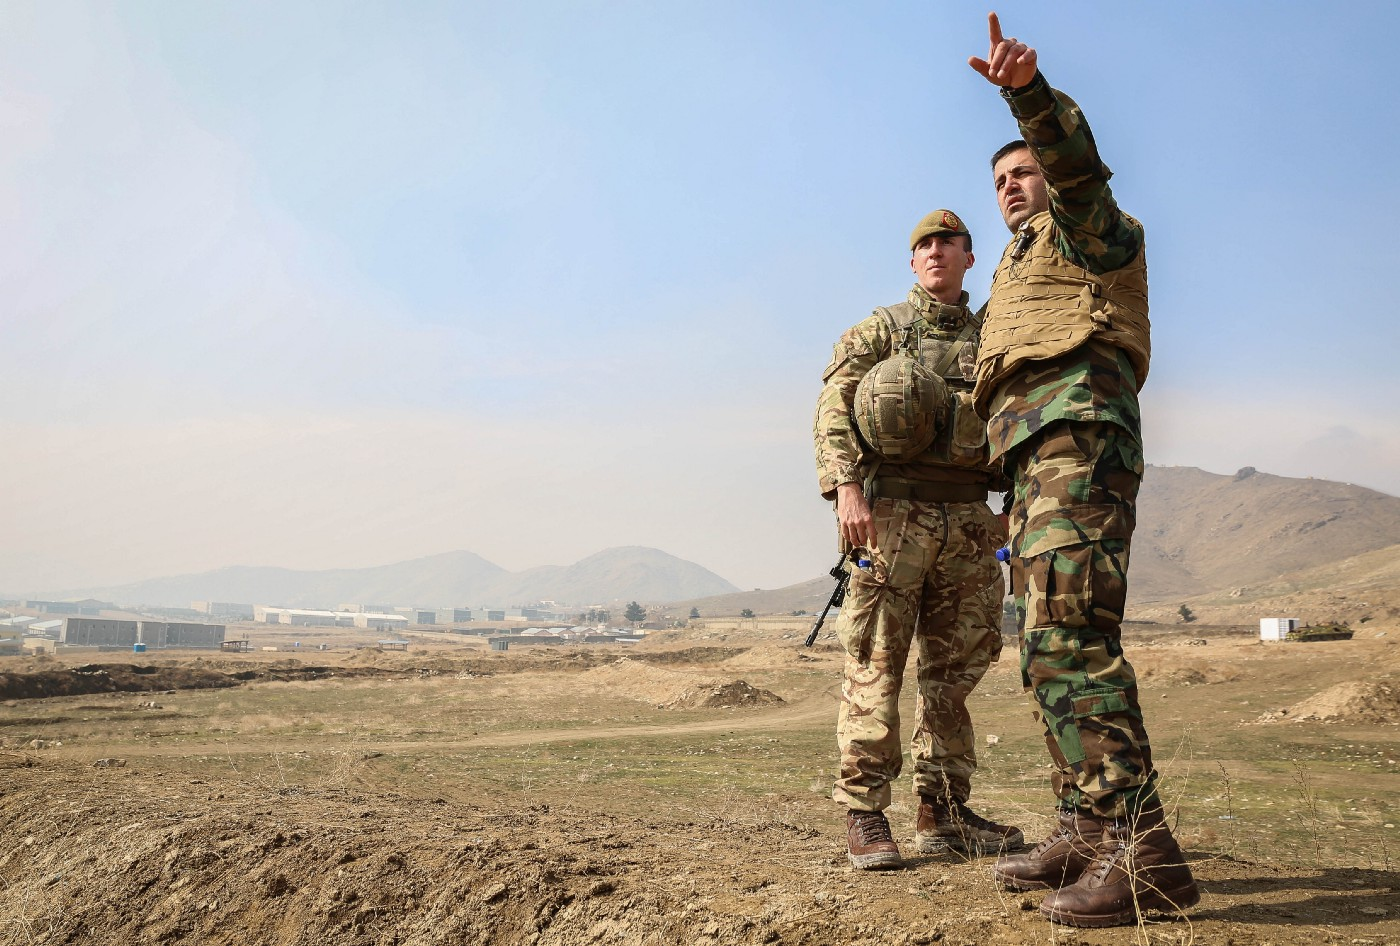 The Afghan National Army Officer Academy Commanding Office converses with Capt Ainsworth, a British Army mentor at ANAOA.